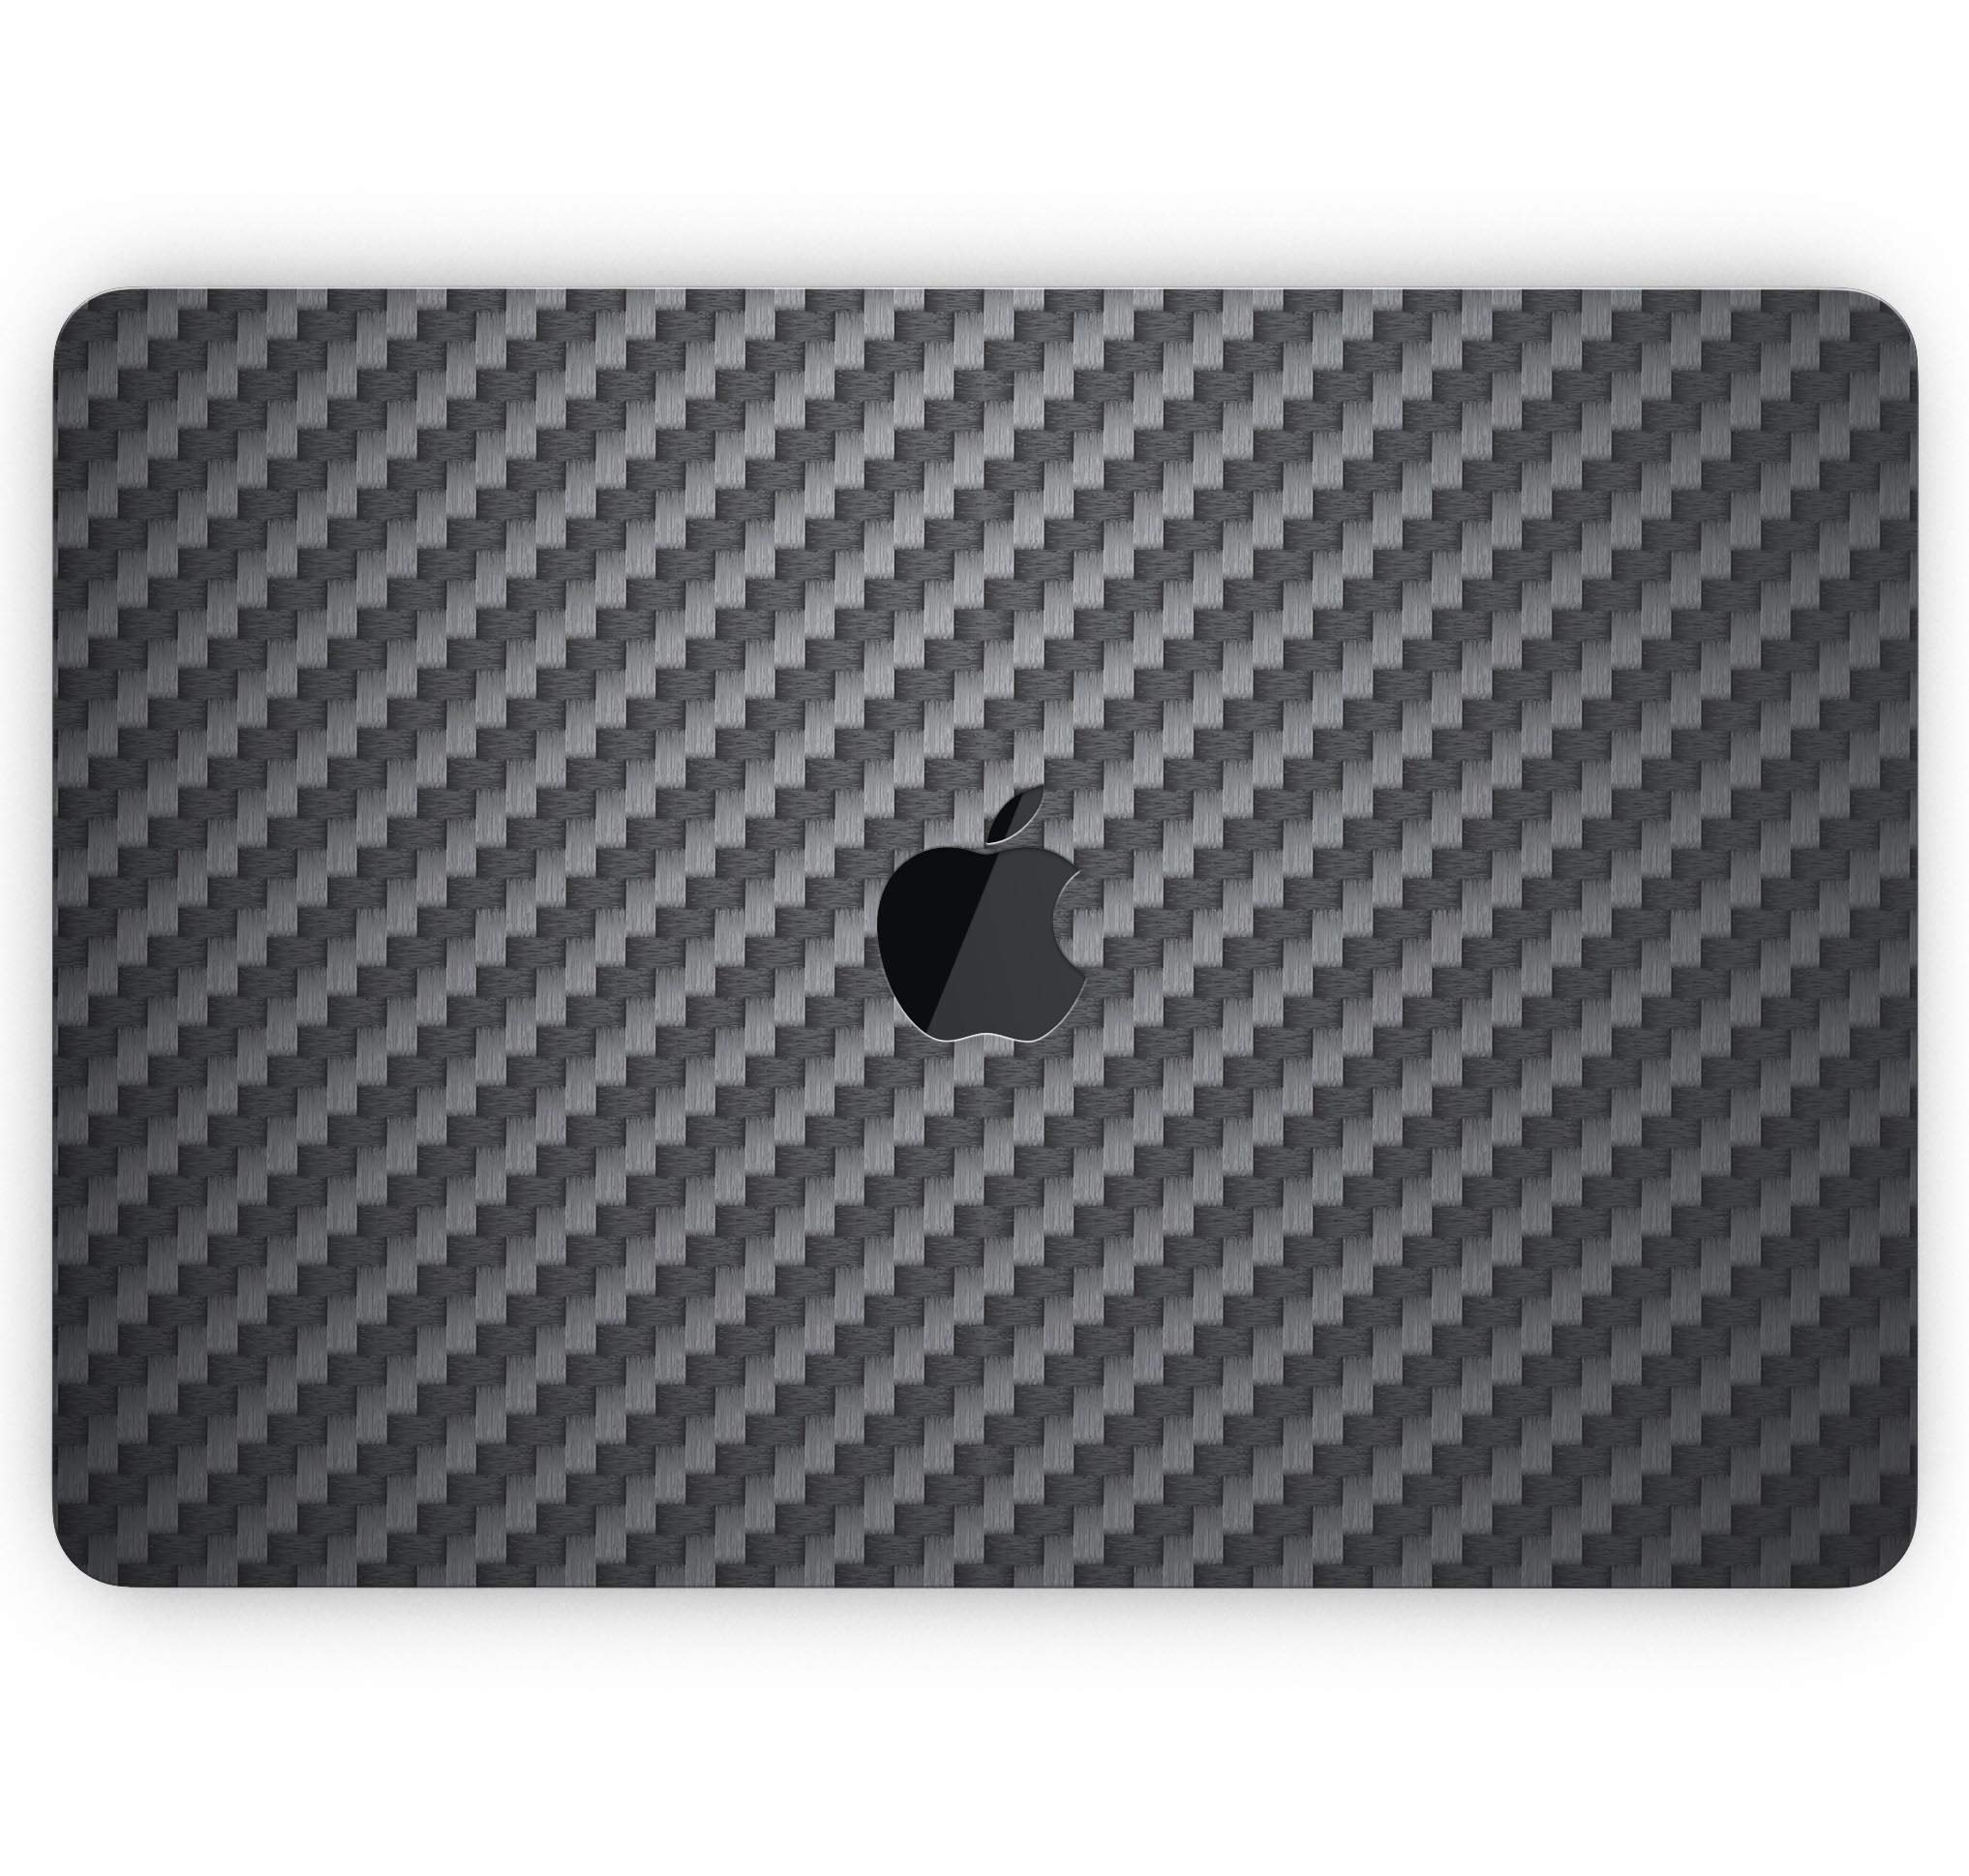 Carbon Fiber Texture - Design Skinz Premium Full-Body Cover Wrap Matte Finished Decal Skin-Kit for The MacBook Air 13'' (Model A1932)